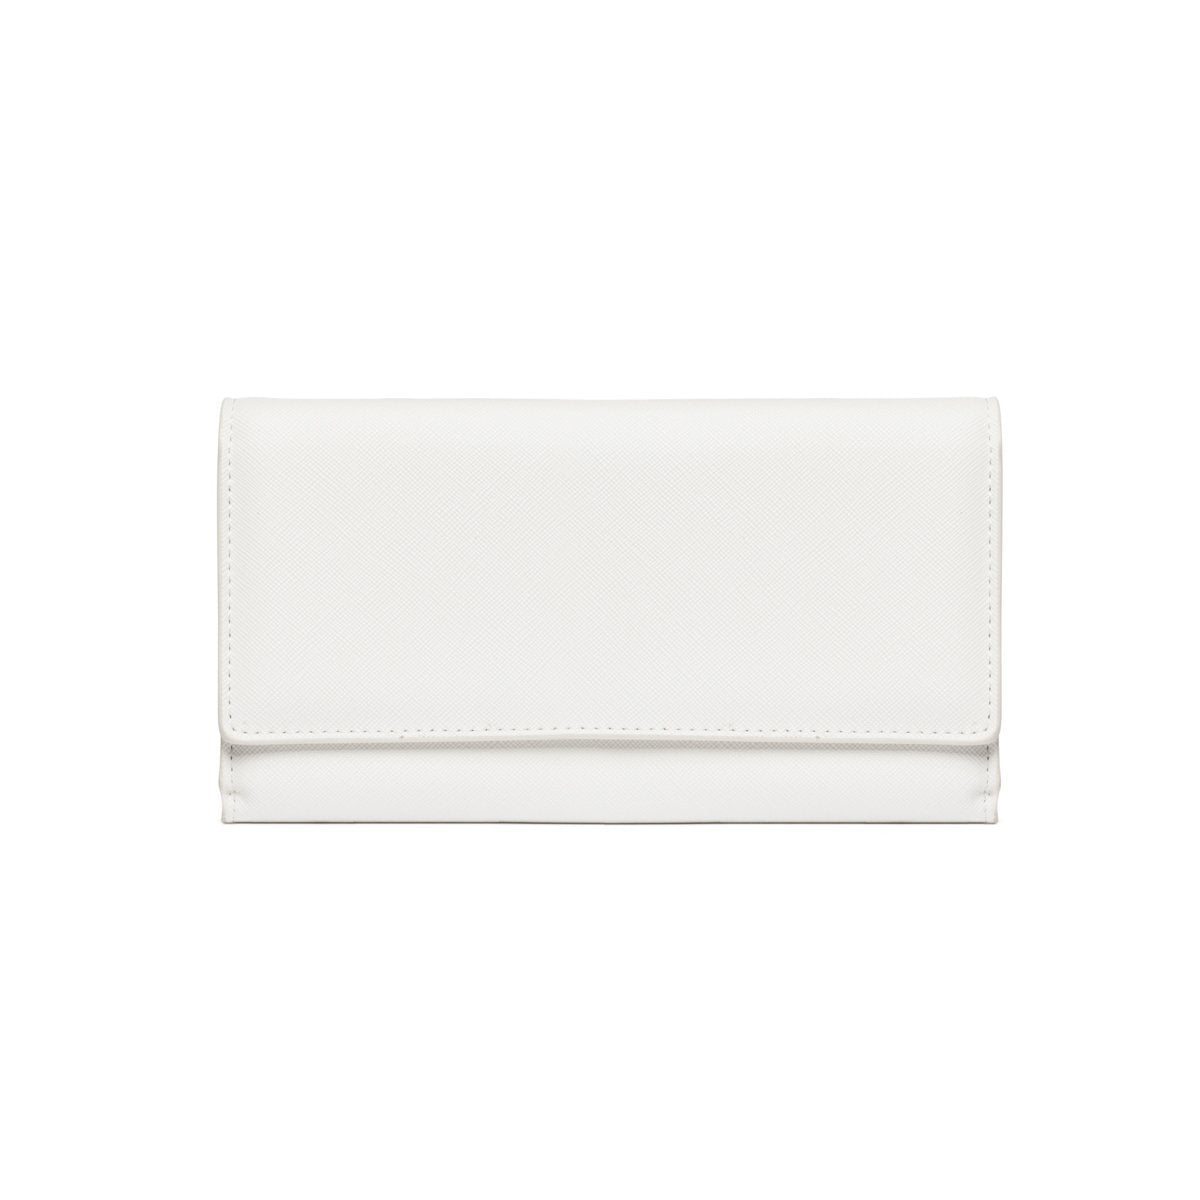 Snow White Bella Wallet